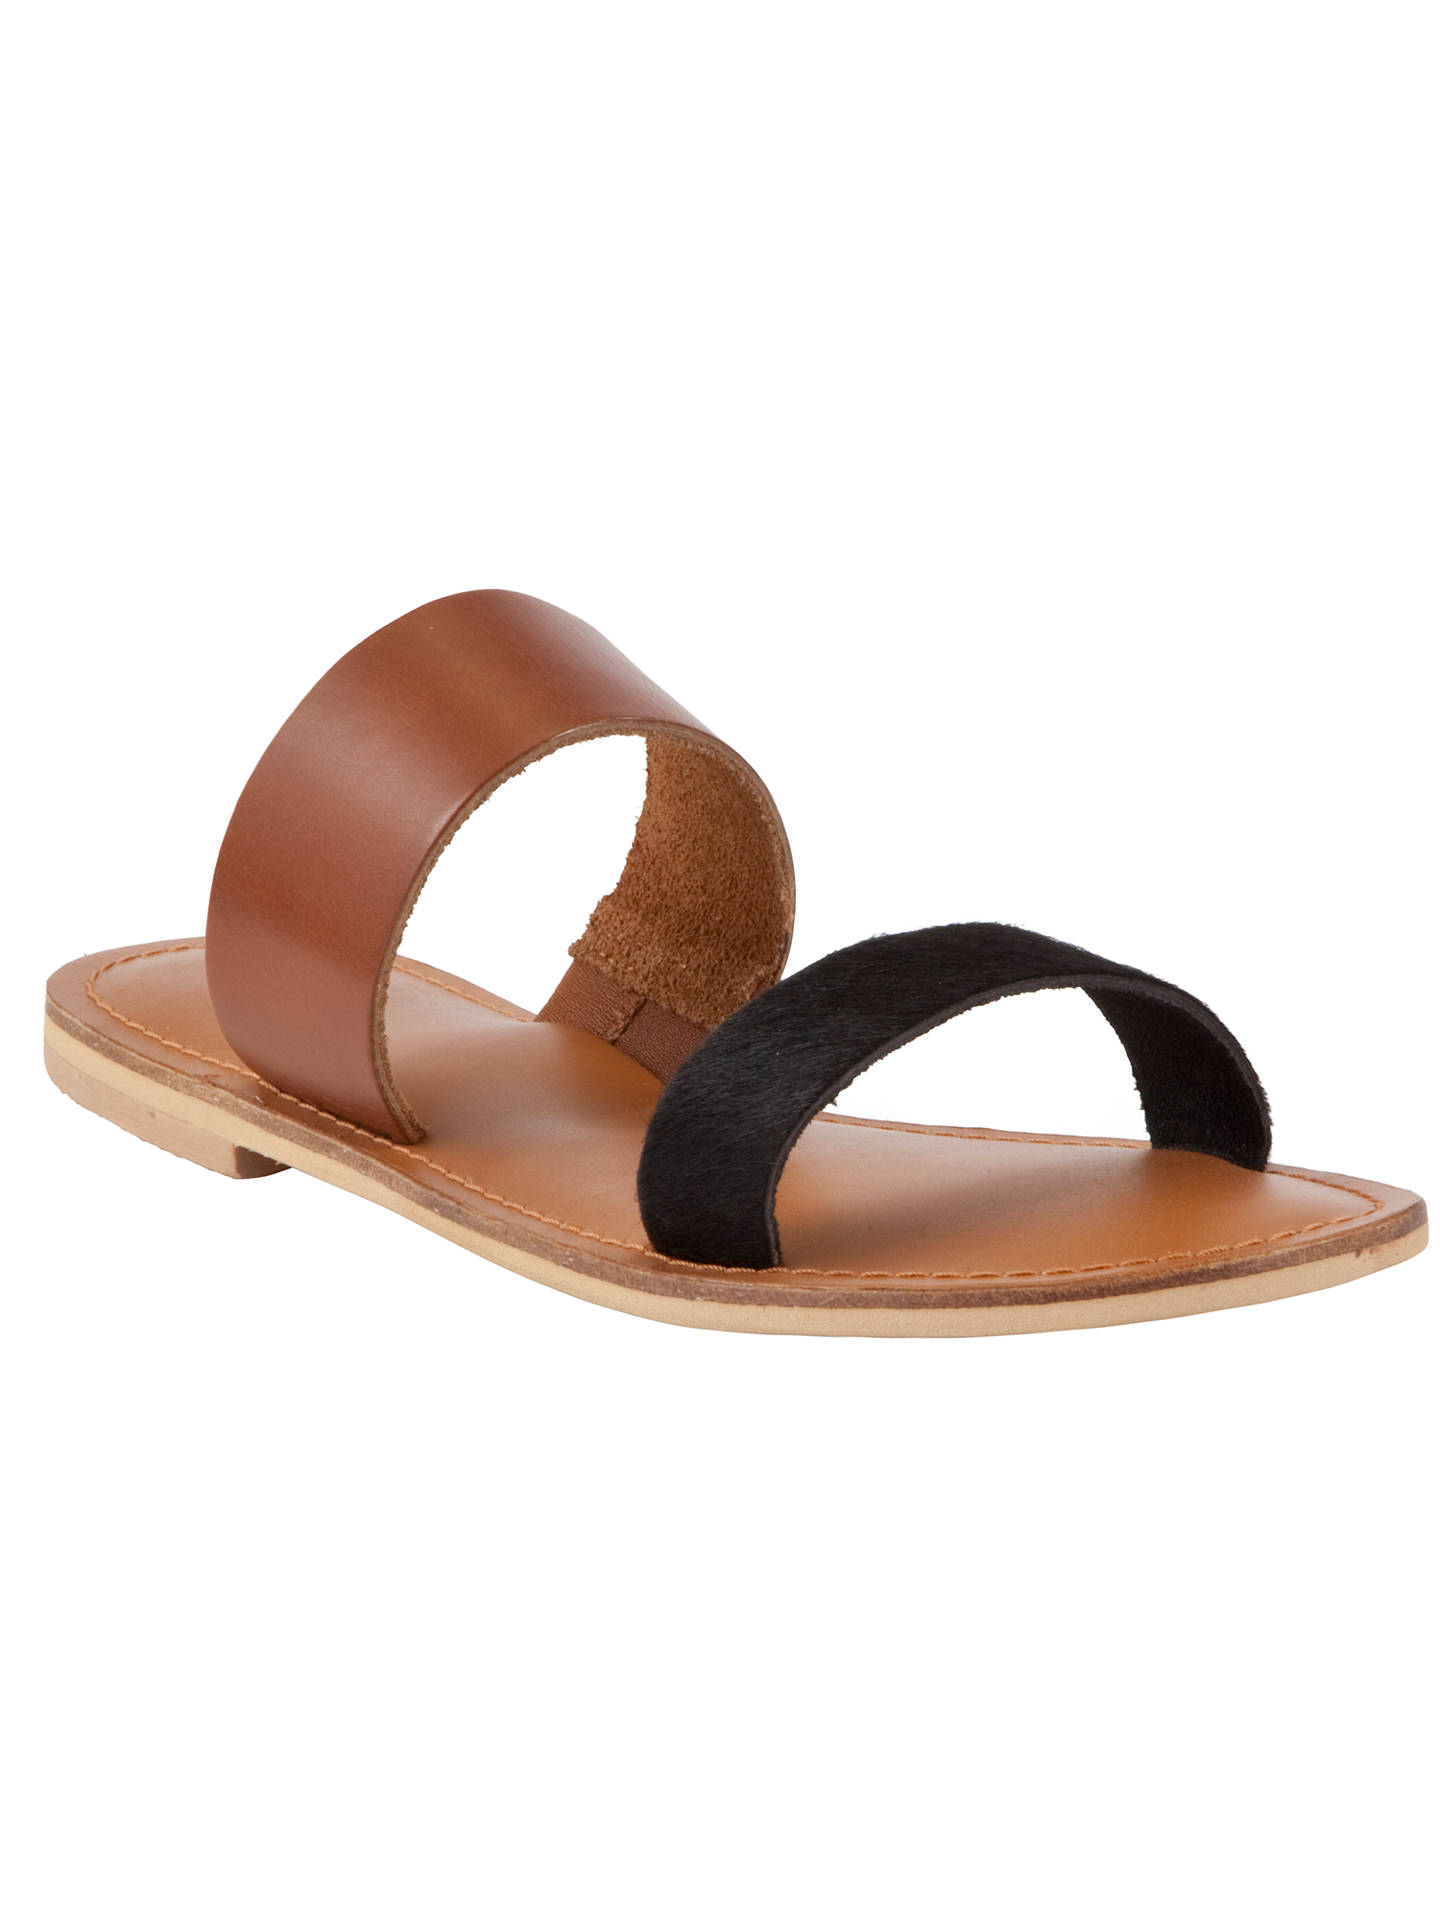 4af97bf24e8ab Buy Collection WEEKEND by John Lewis Jersey Two Strap Leather Sandals, Tan  / Black, ...